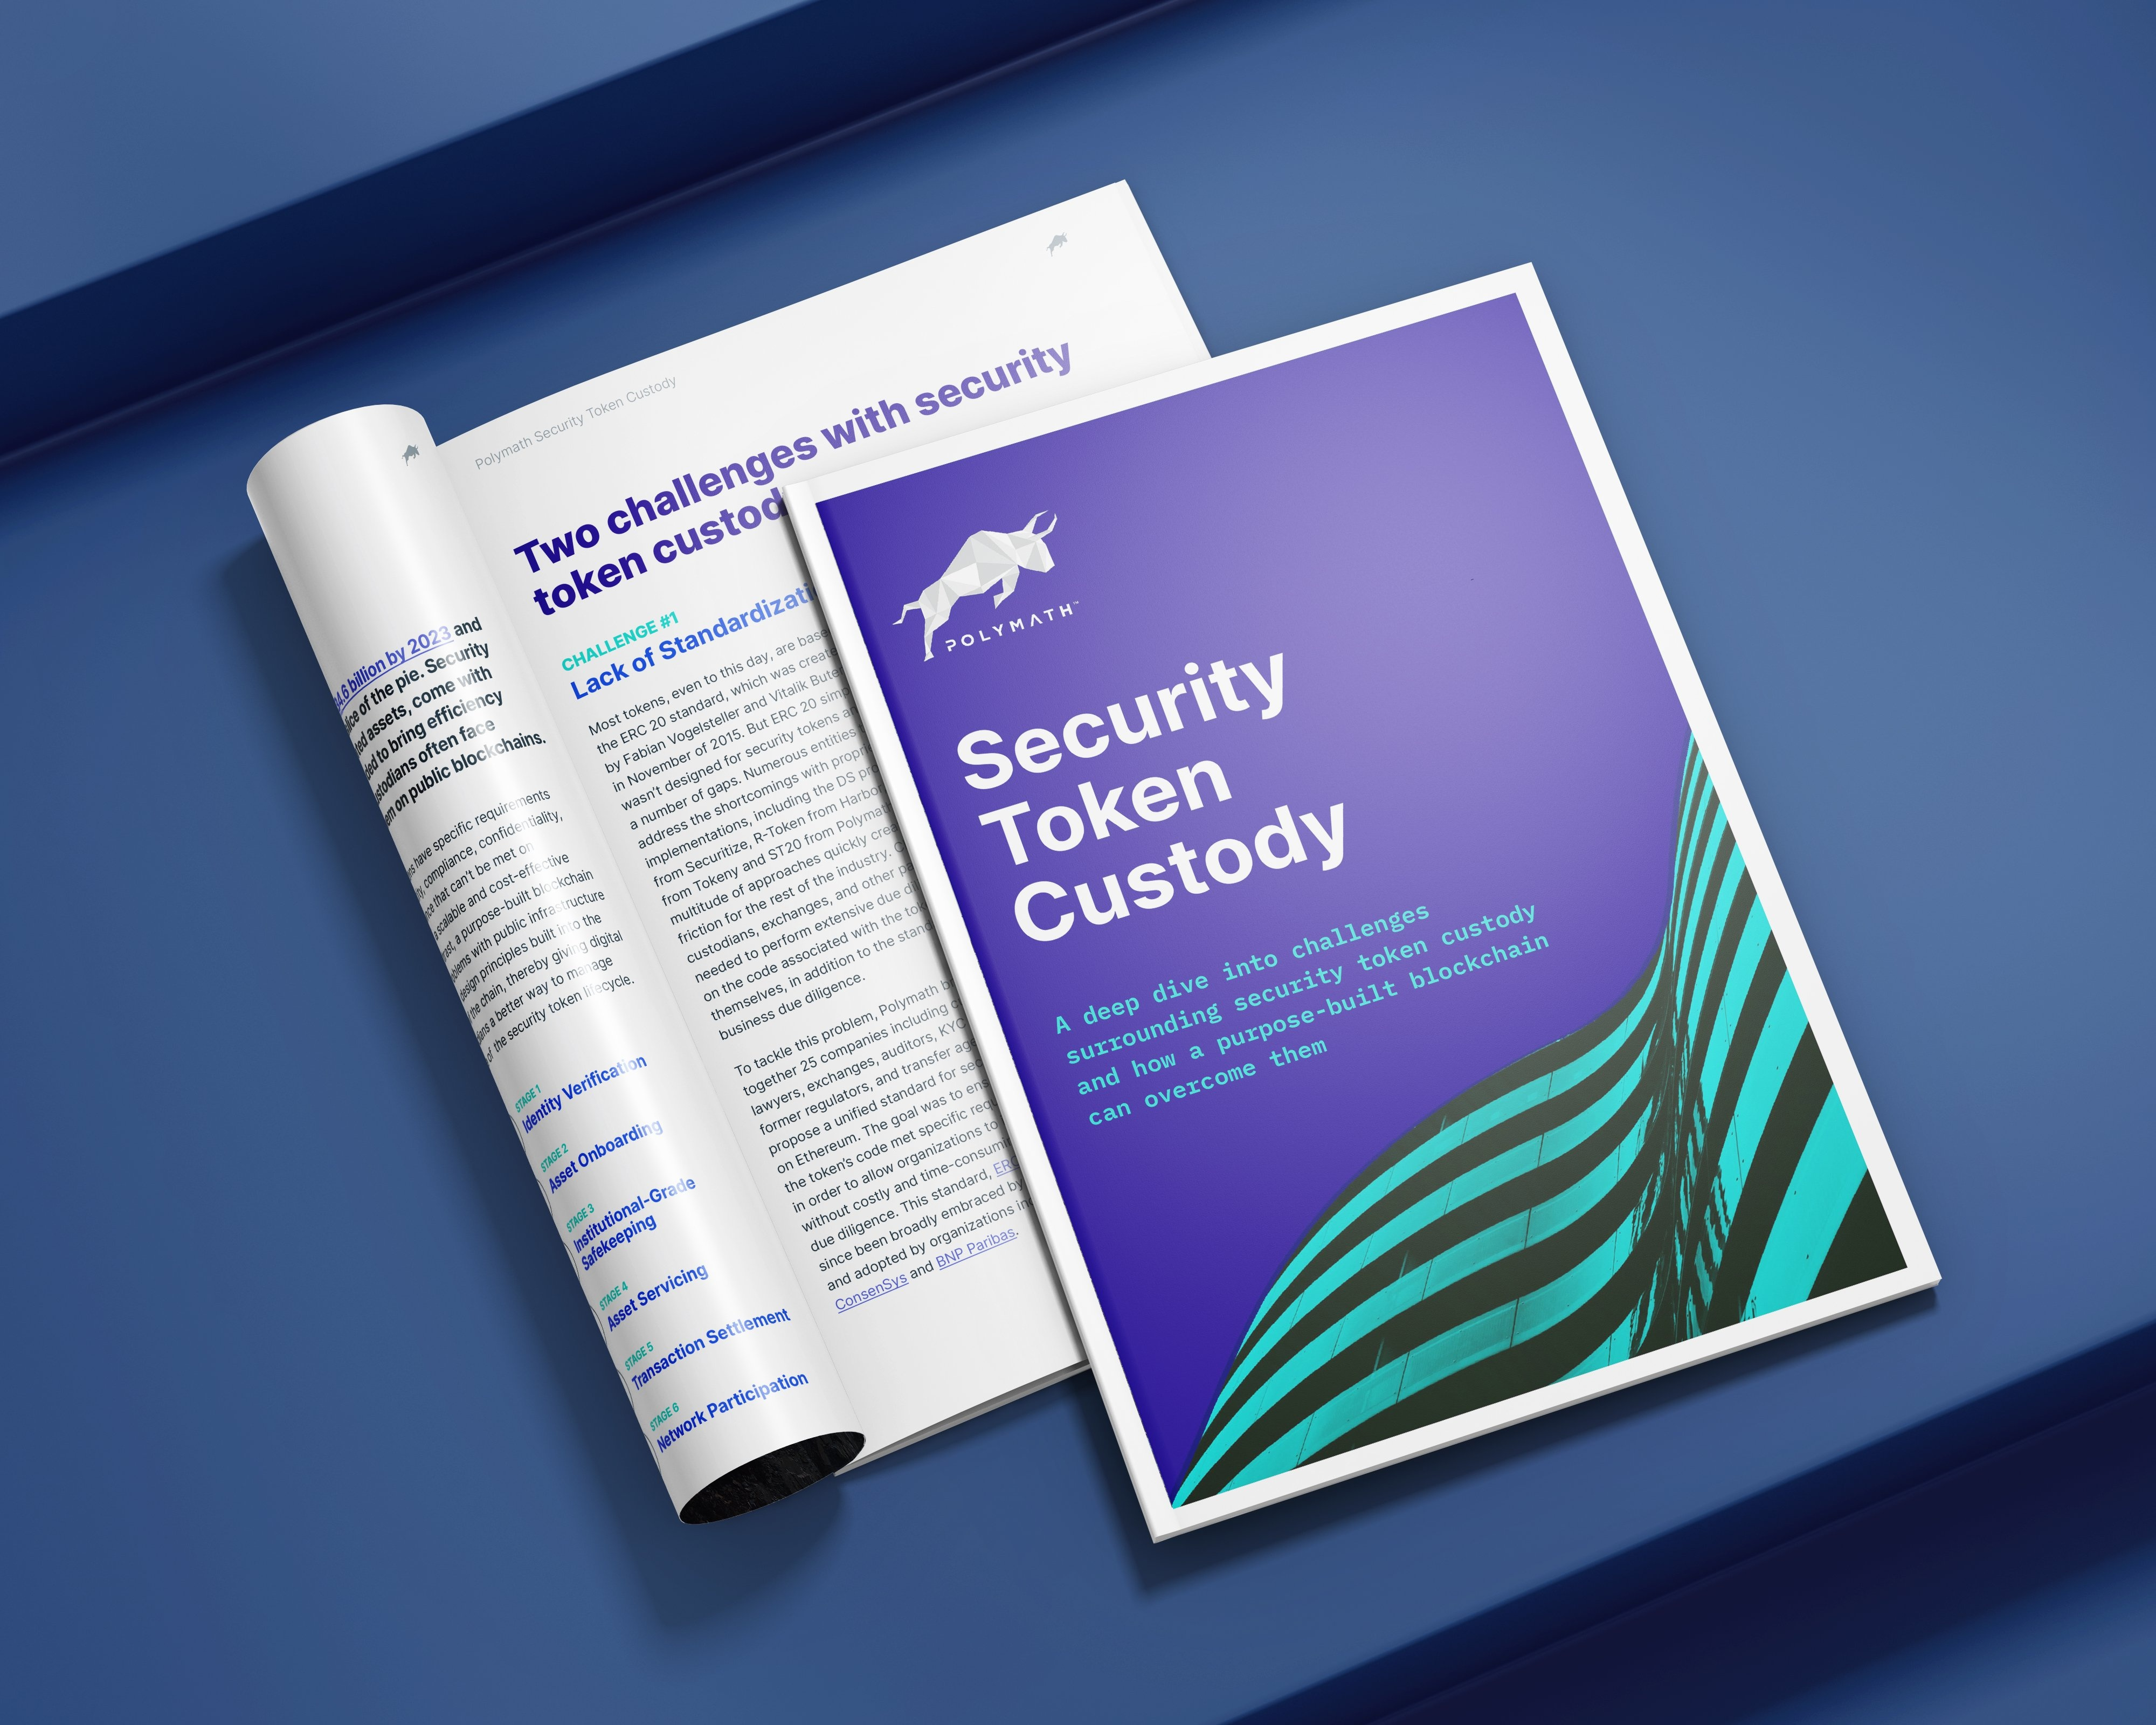 Security Token Custody: The Challenges and Opportunities